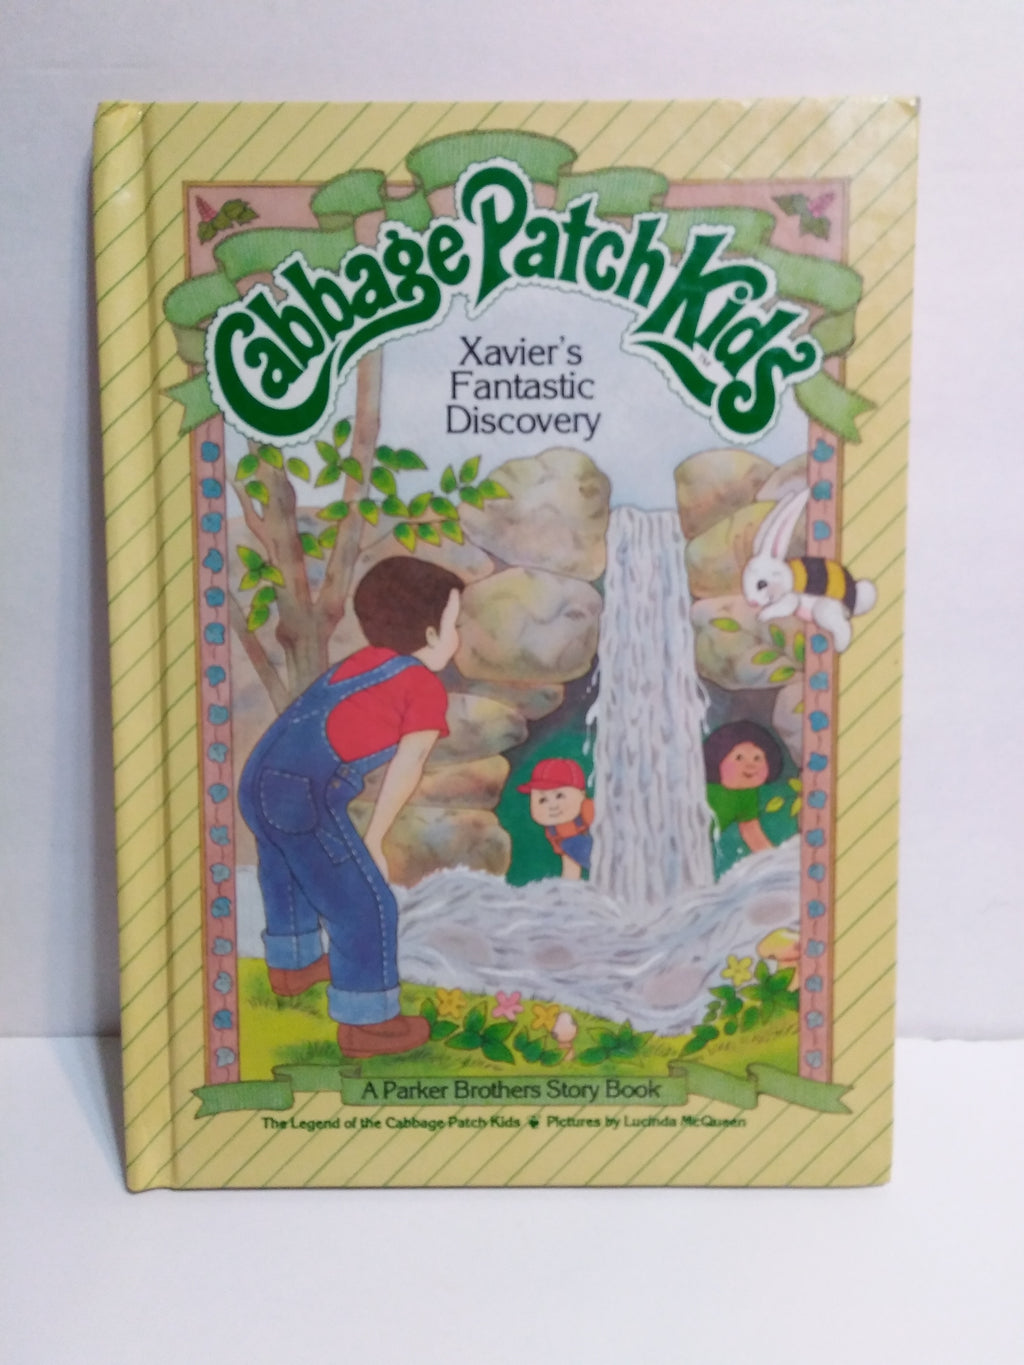 Cabbage Patch Kids HC Book Xavier's Fantastic Discovery-We Got Character